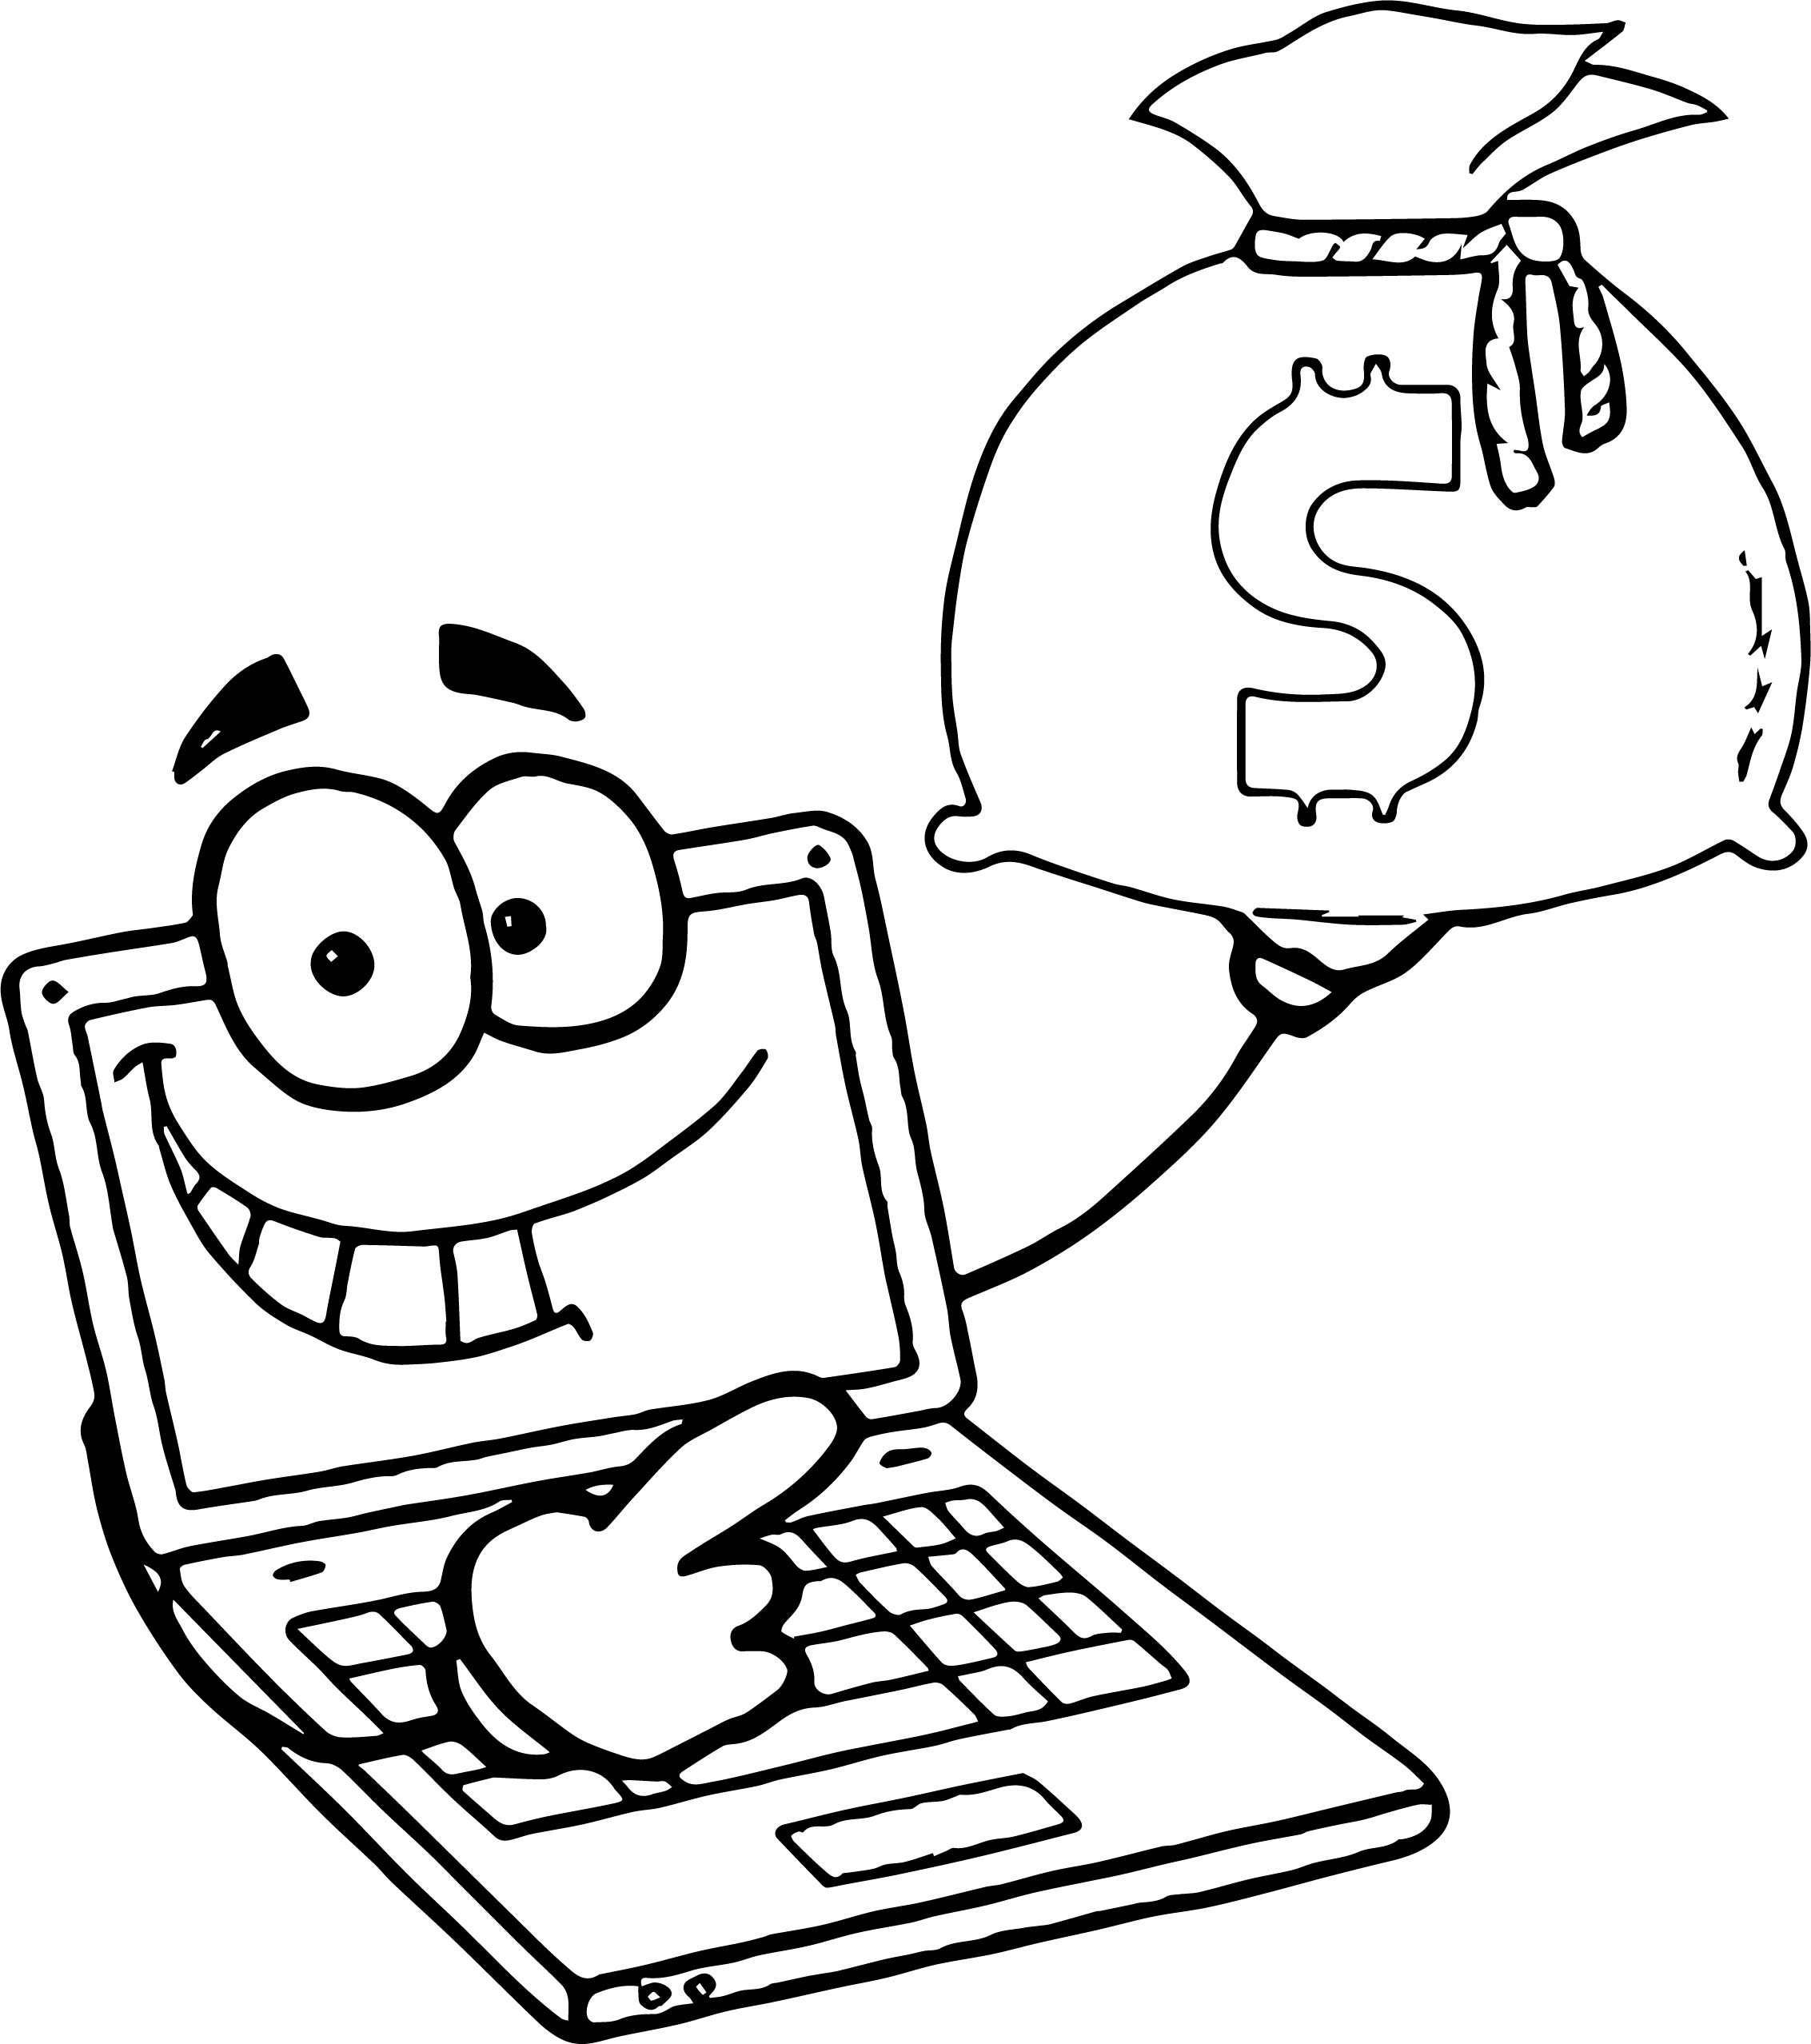 Making Money With Your Computer Laptop Computer With A Sack Of Cash Coloring Page